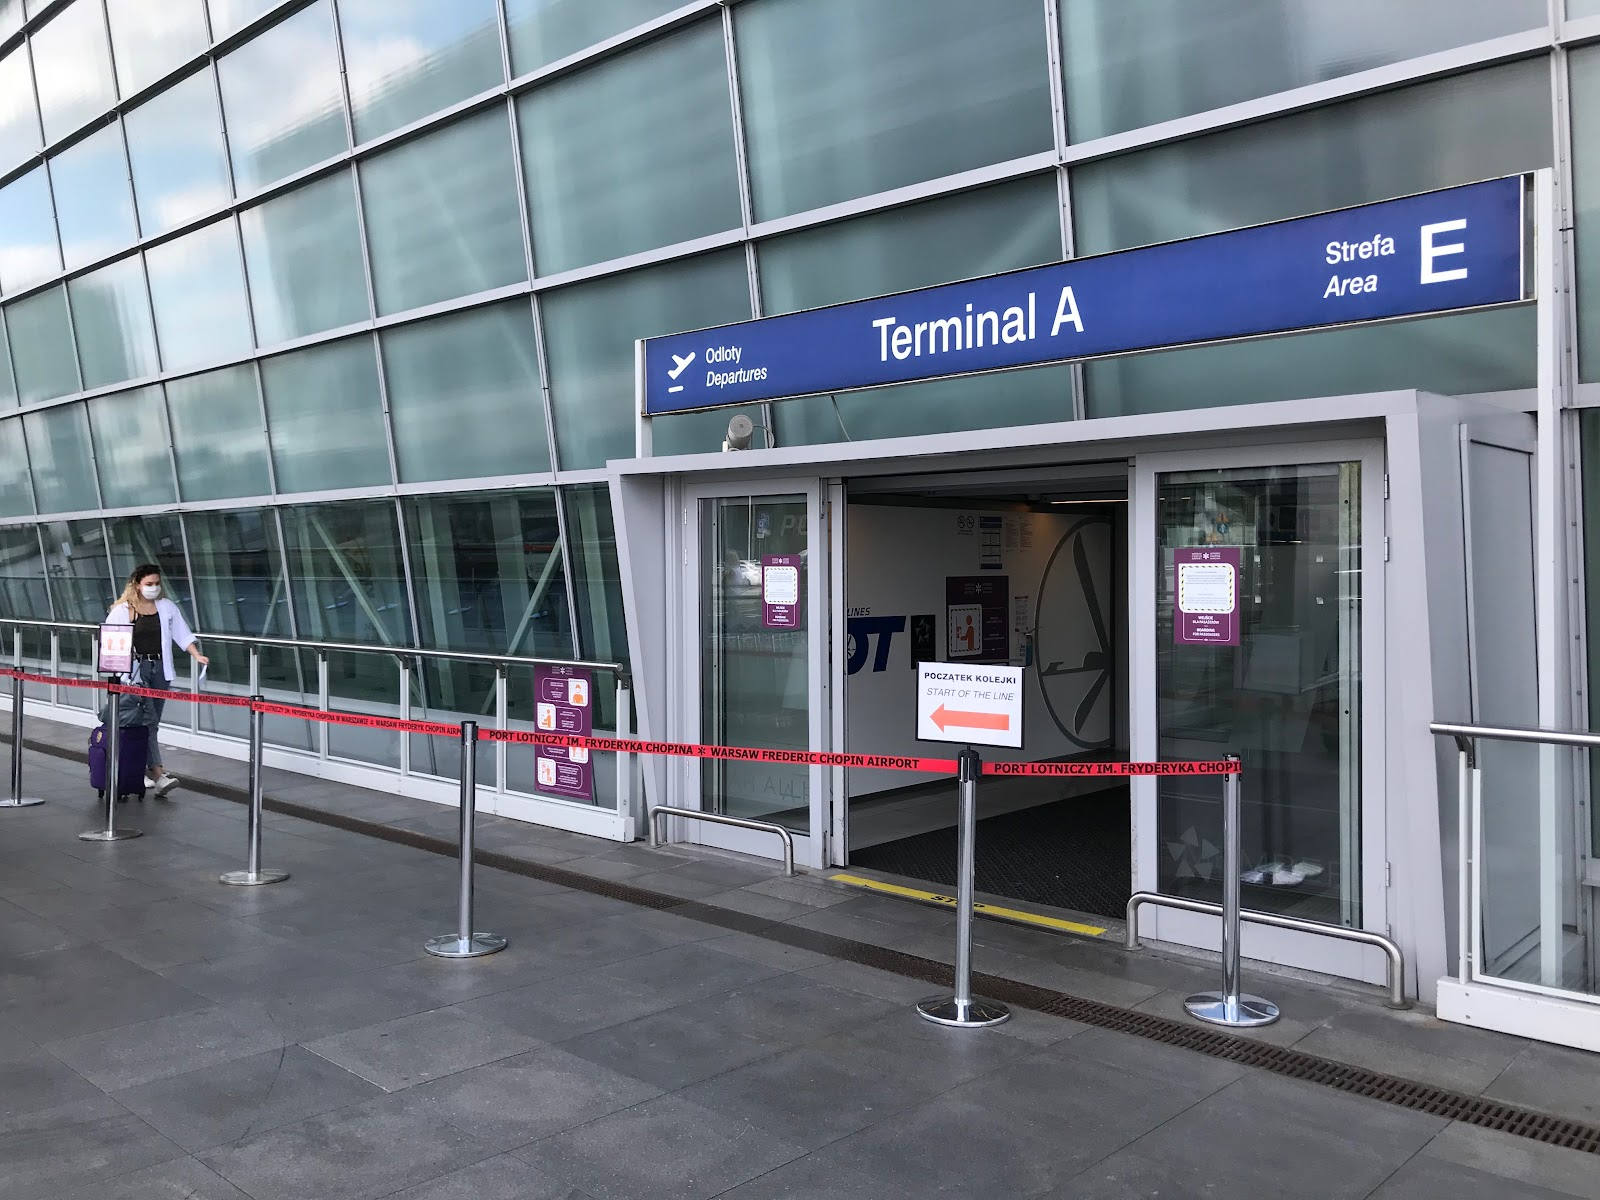 woman entering airport terminal at Warsaw Chopin Airport in June 2020. Most of the entrances are closed, temperature checks for passengers and mandatory masks. COVID-19 changed airplane travel.